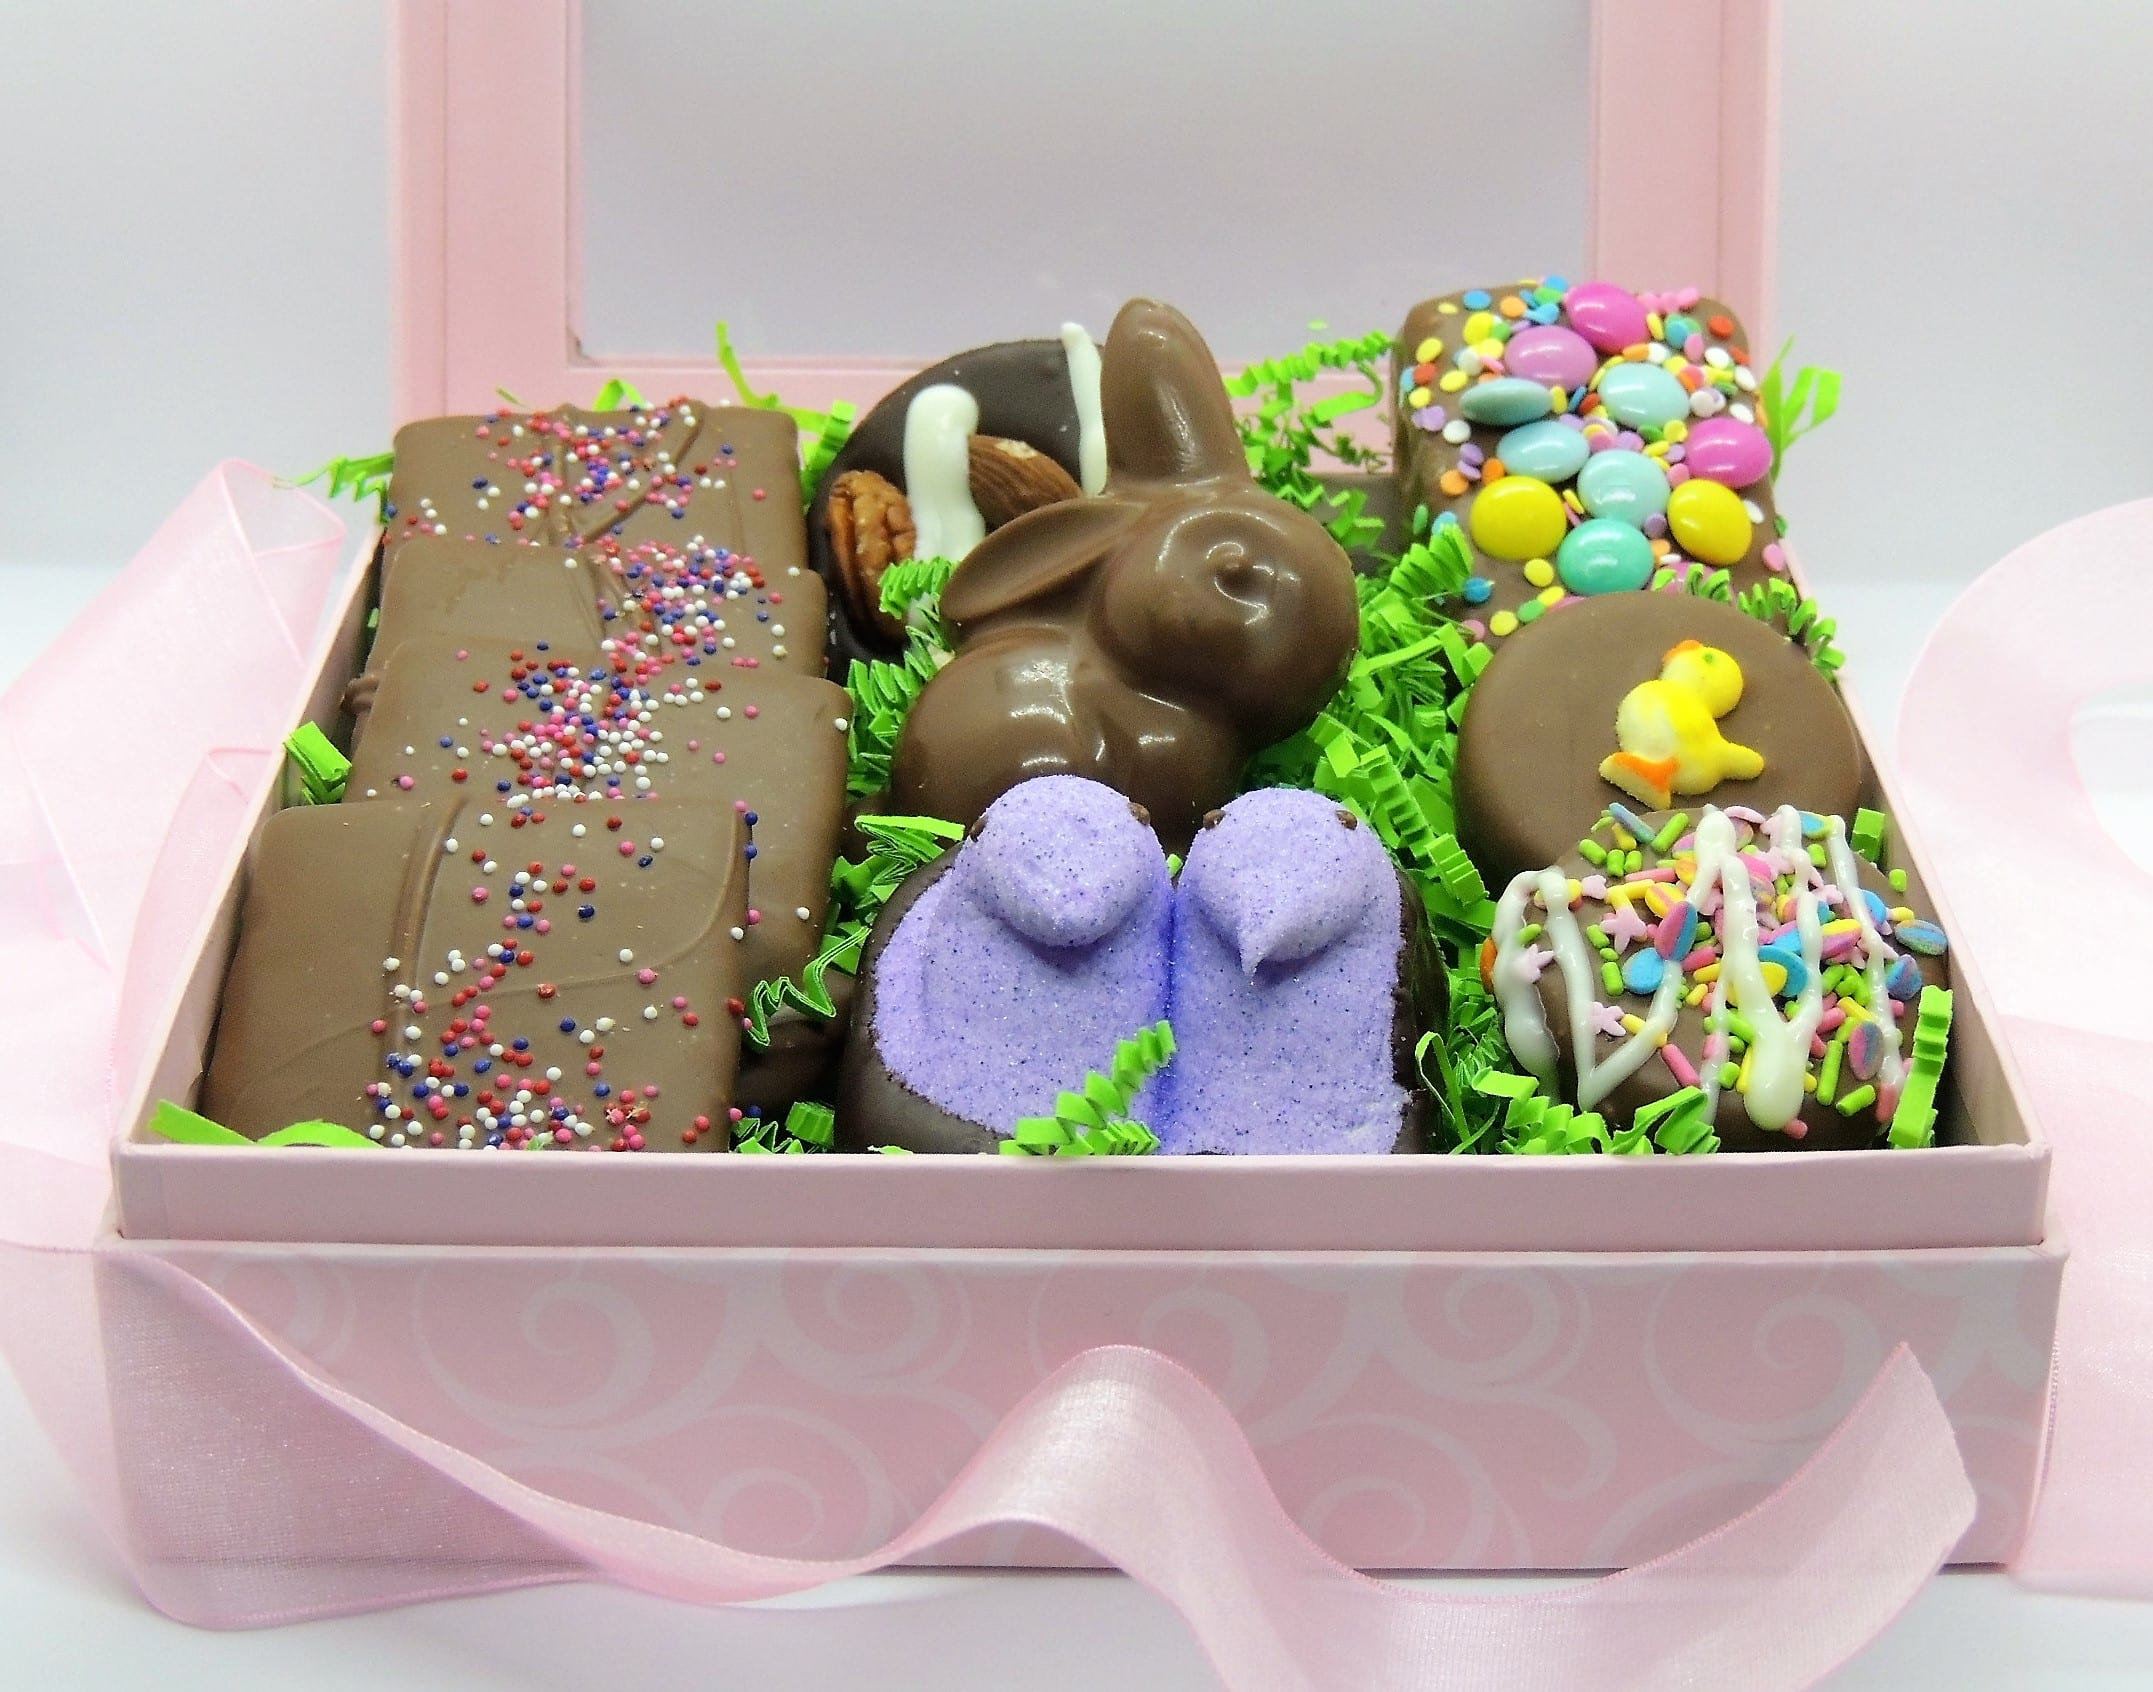 Spring treasures kids chocolate treats in reusable treasure box easter gifts for her negle Choice Image